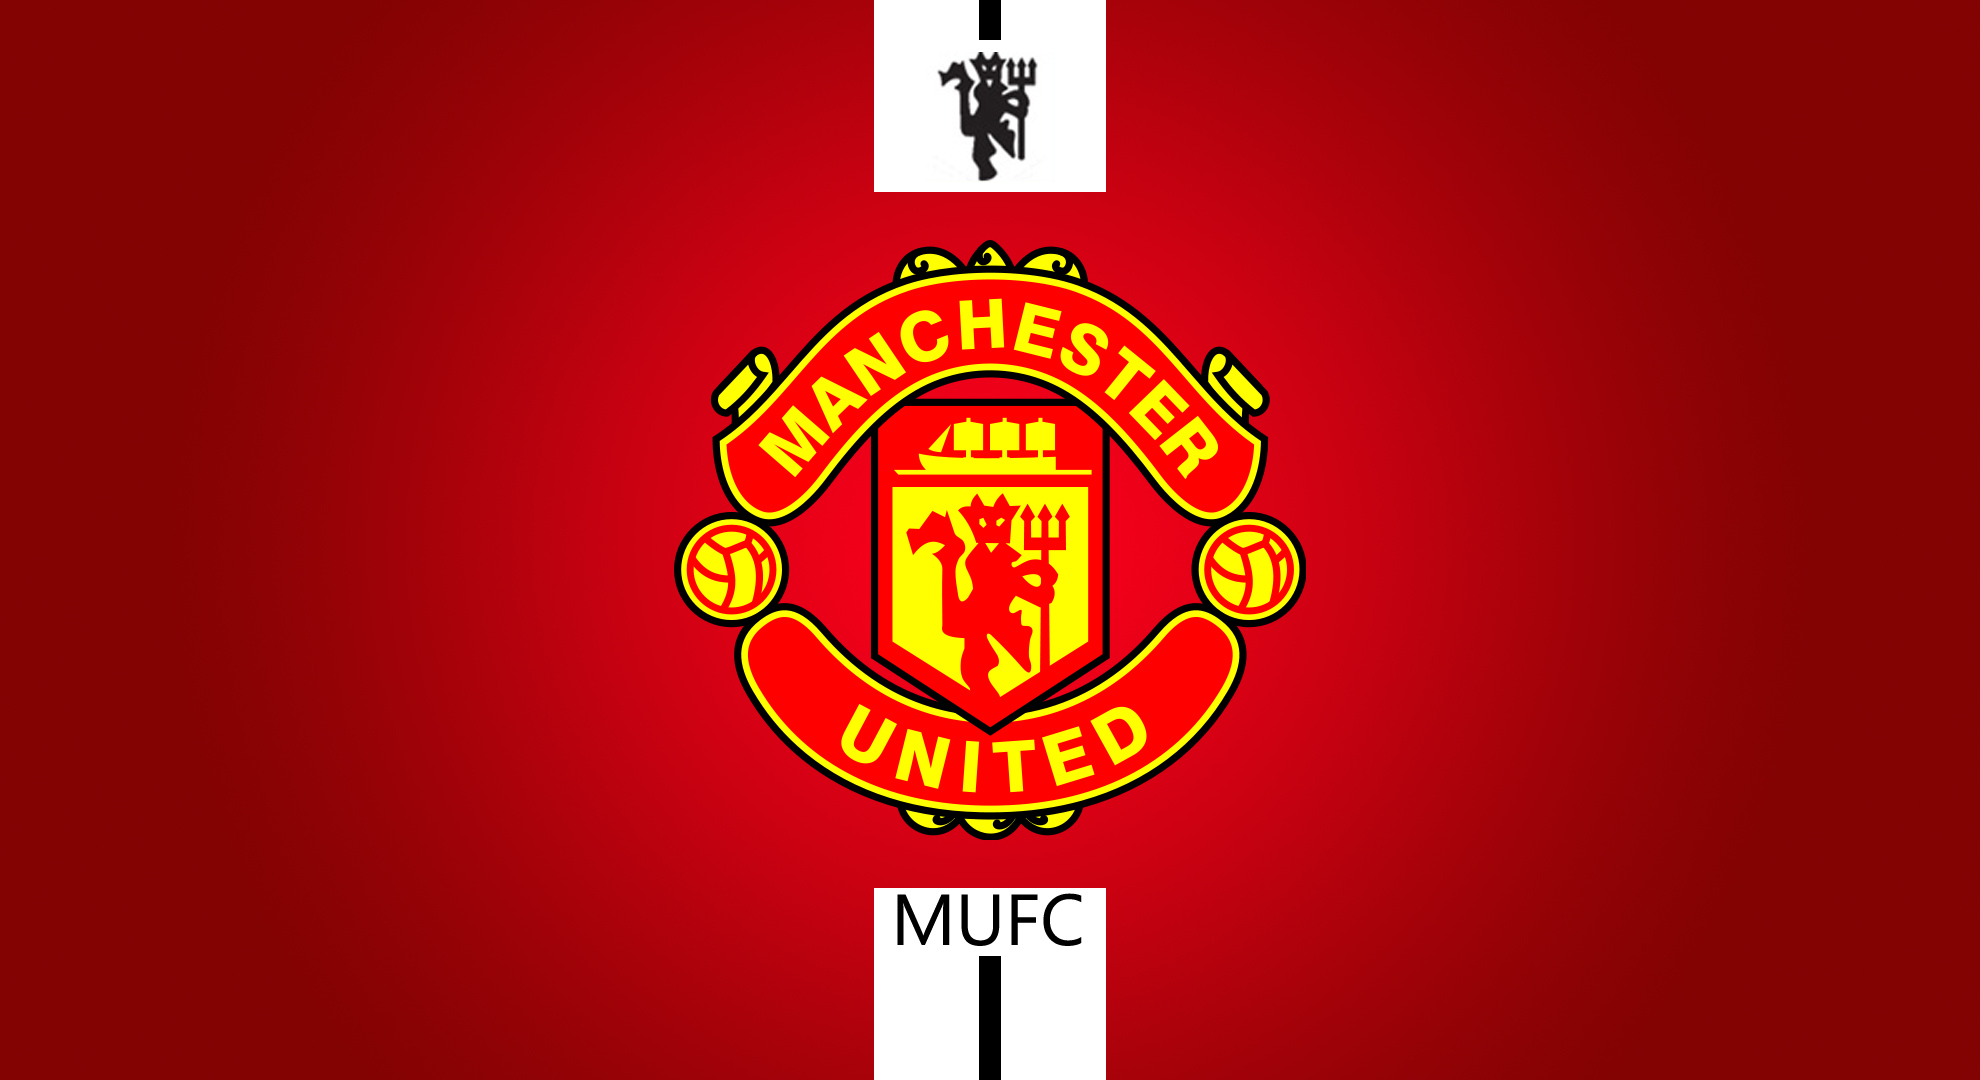 Manchester United Wallpaper 1980x1080 Manchester United FC Club 1980x1080